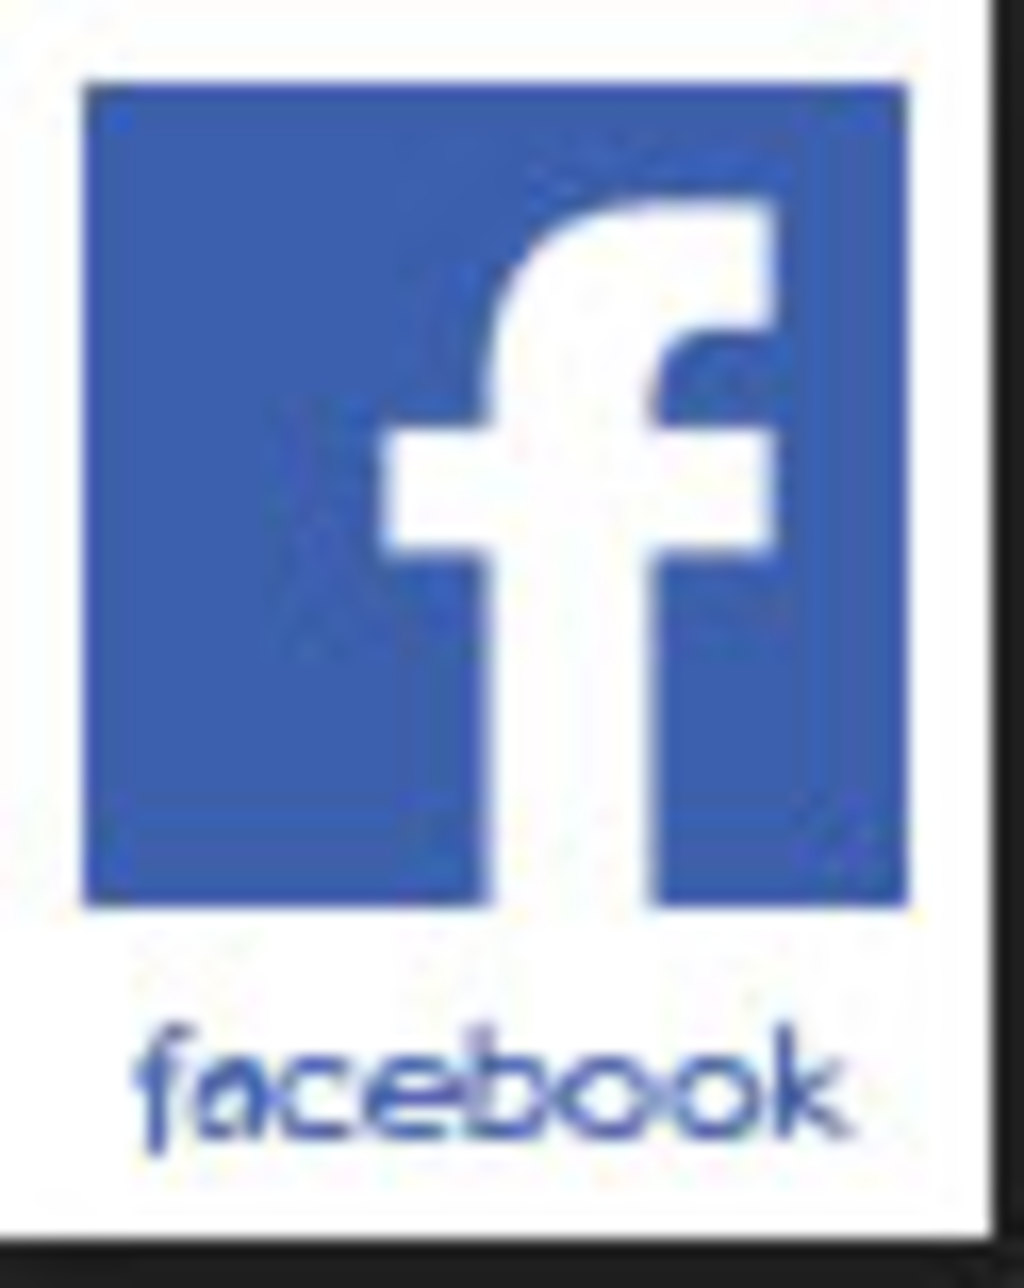 Facbook Link - Logo